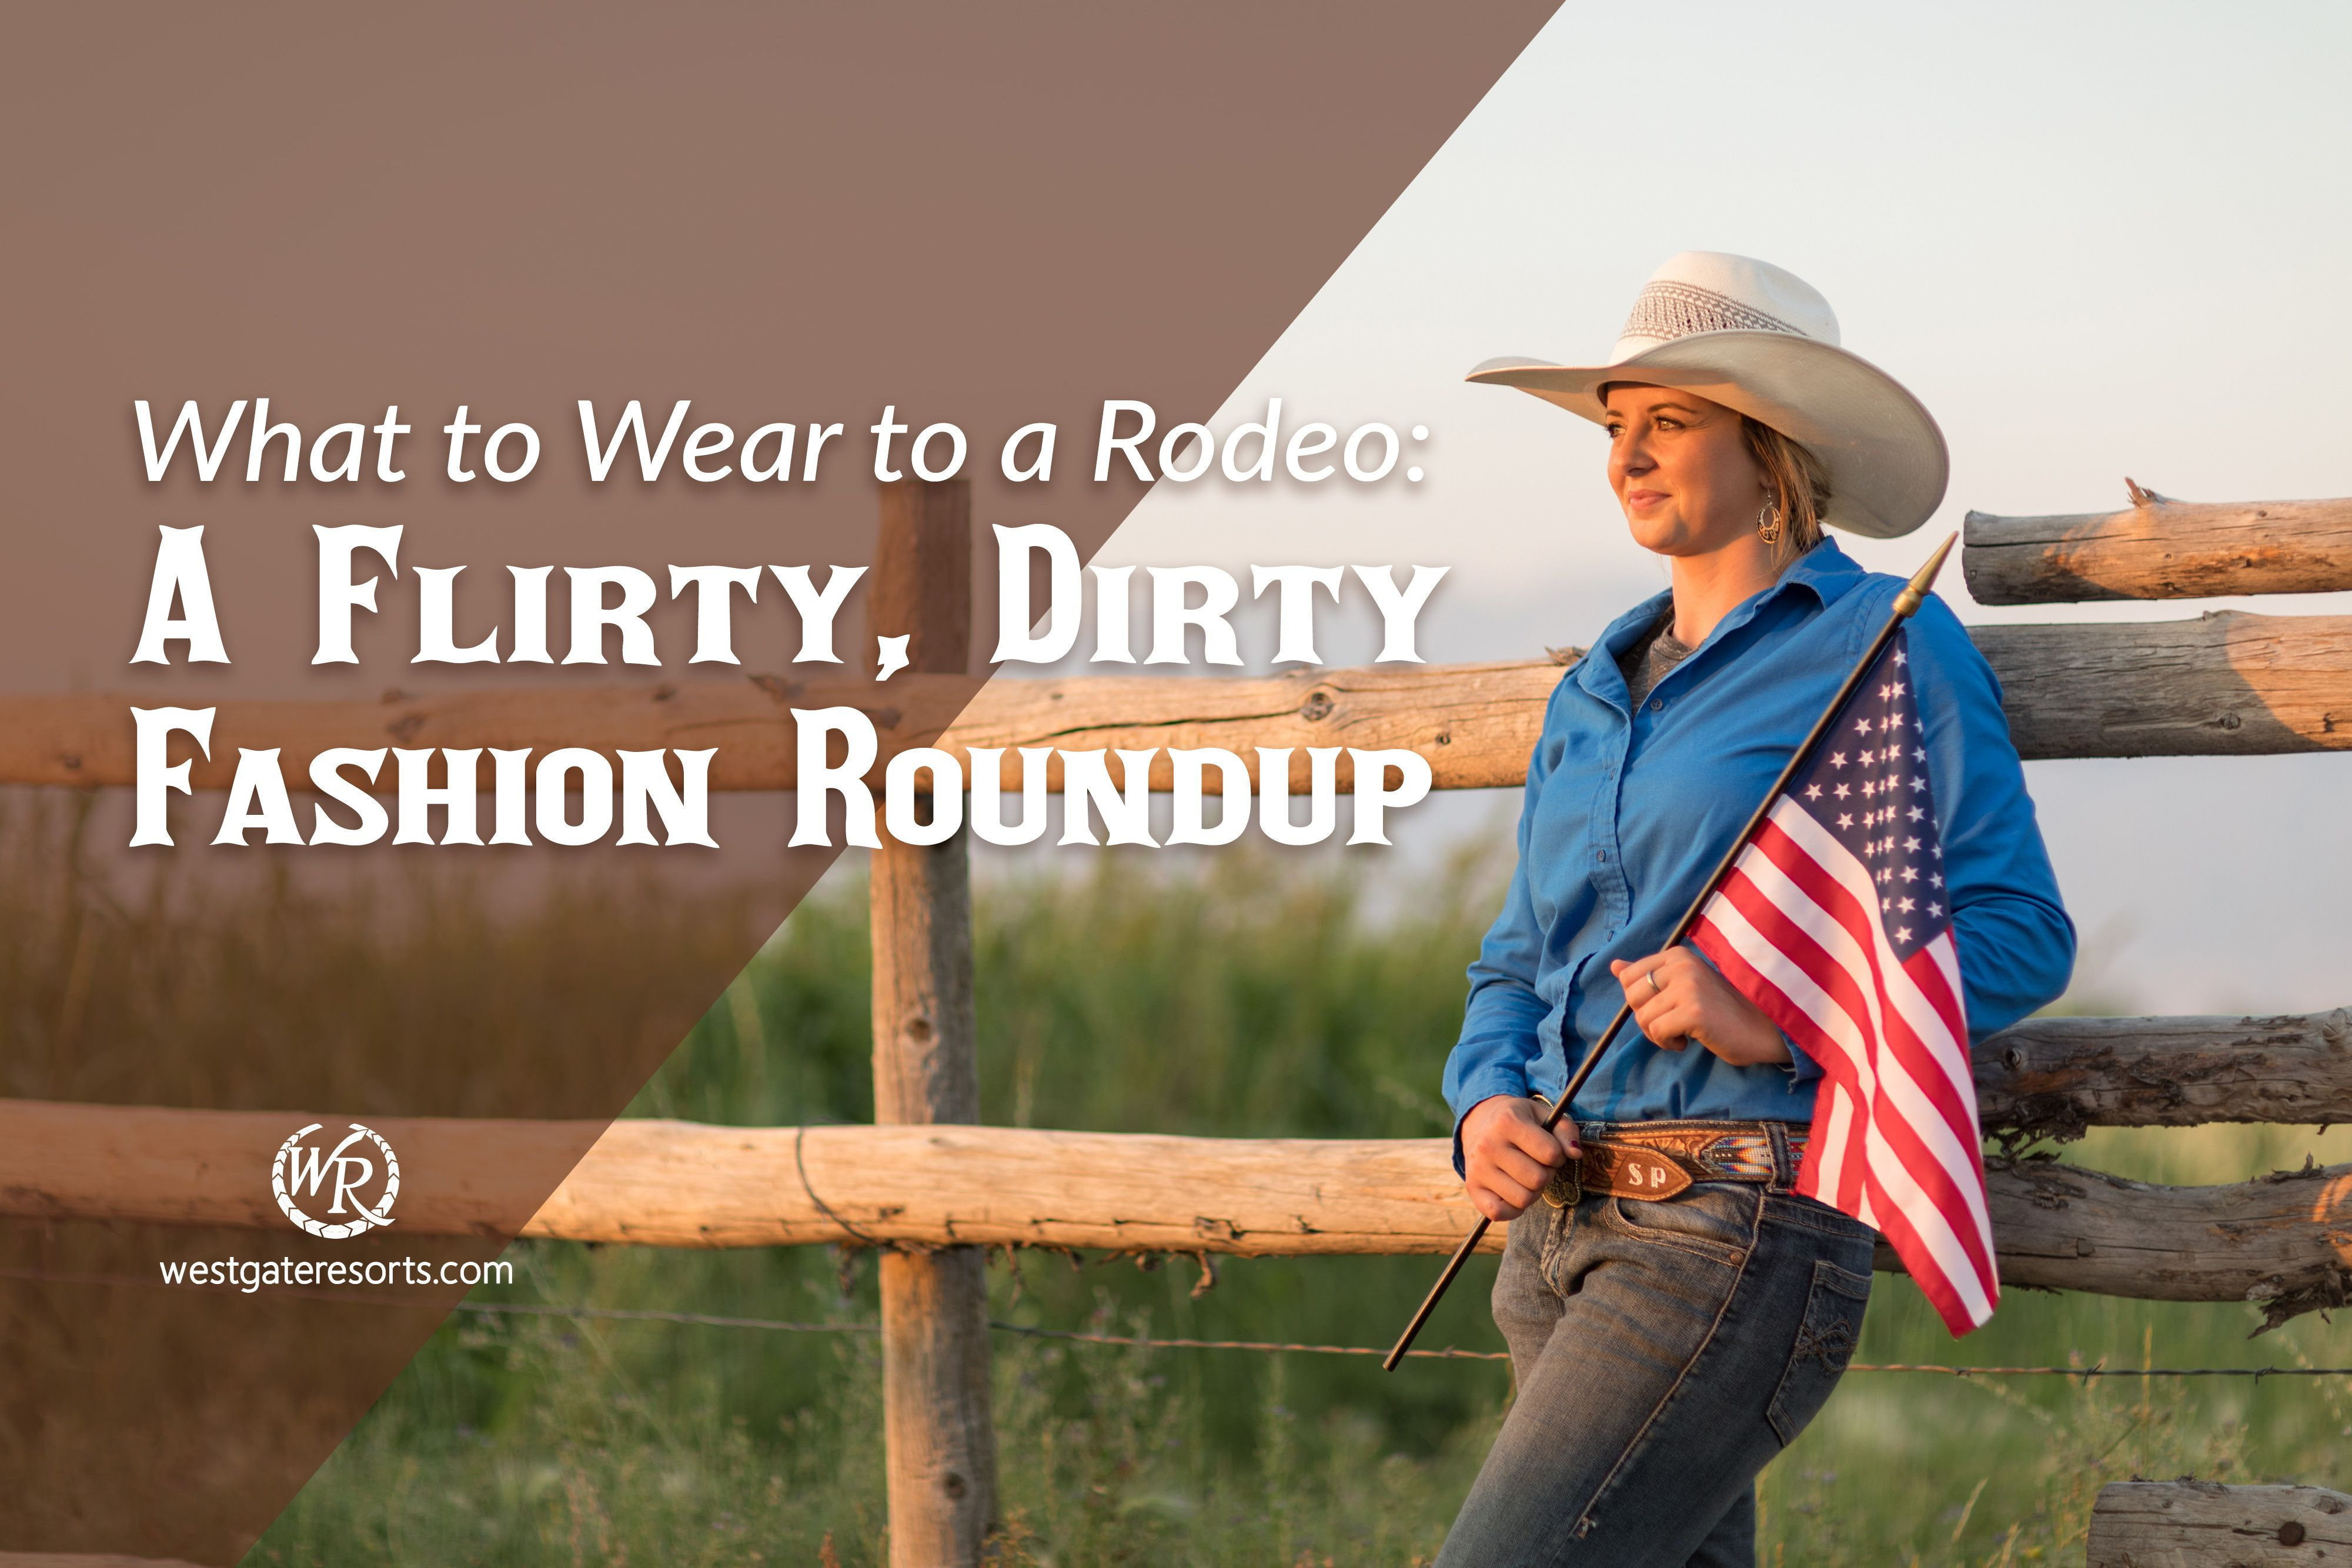 What to Wear to a Rodeo: A Flirty, Dirty Fashion Roundup